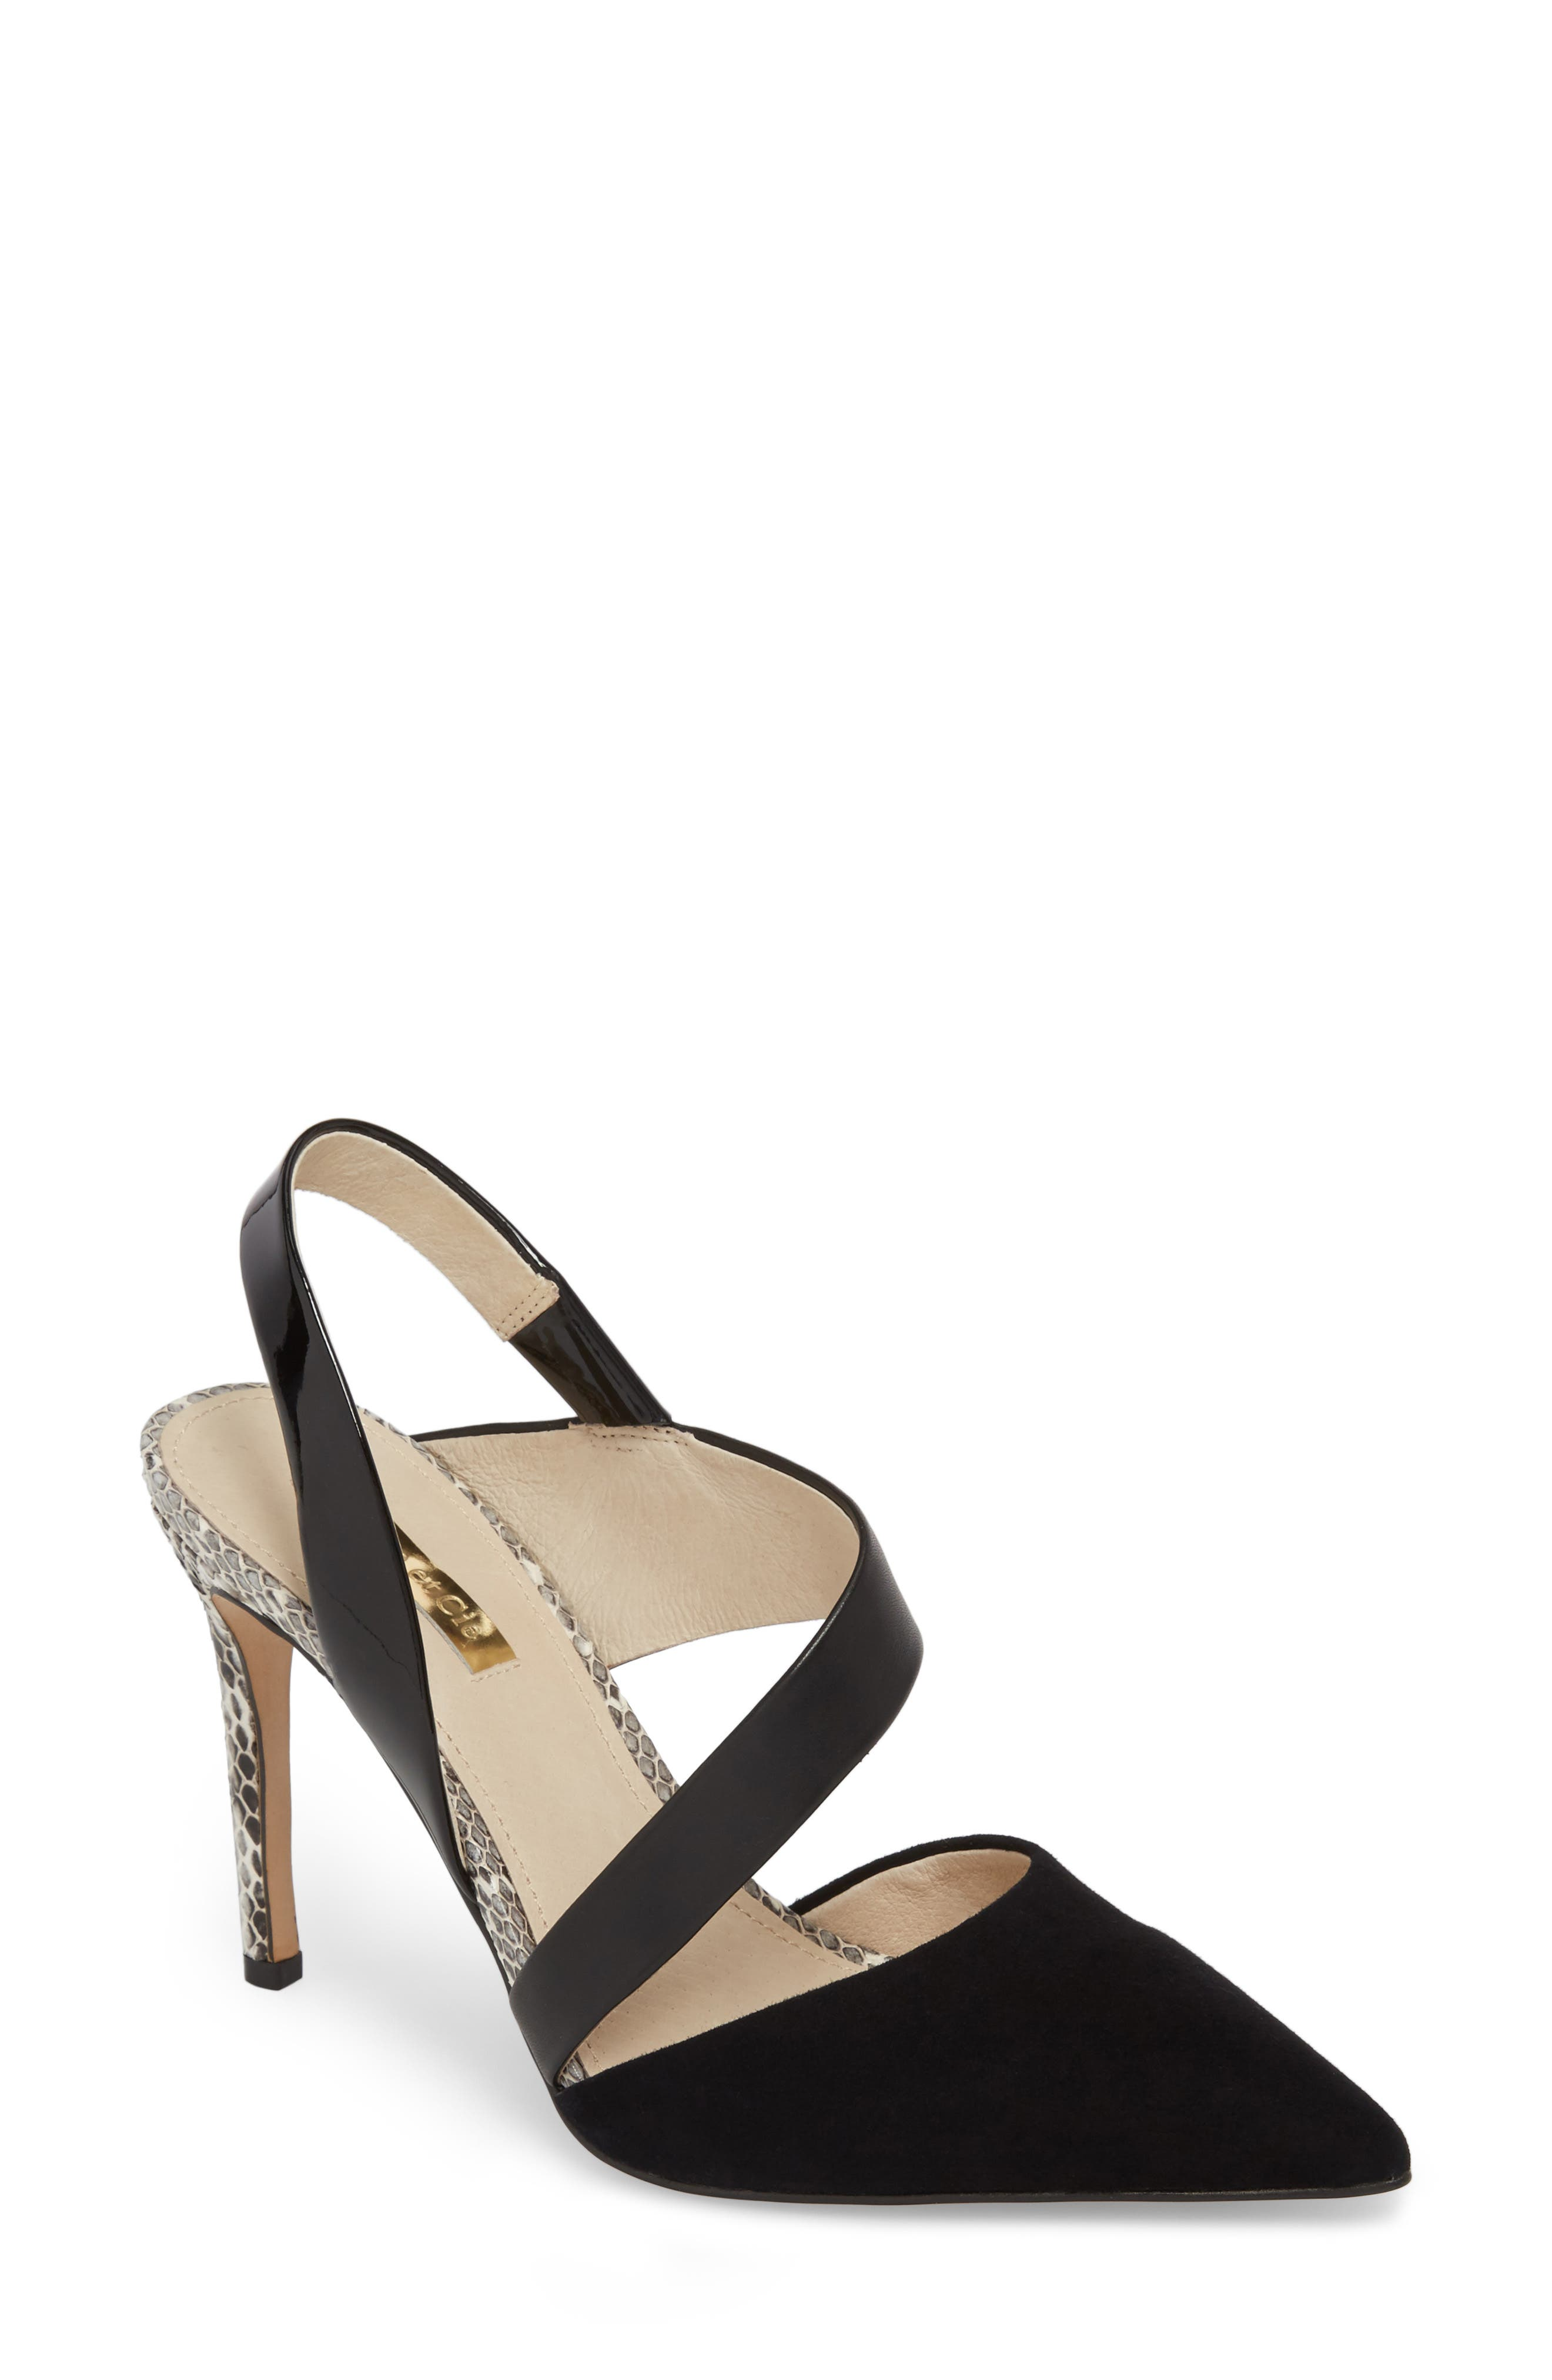 Jerry Pointy Toe Slingback Pump,                         Main,                         color, BLACK SUEDE